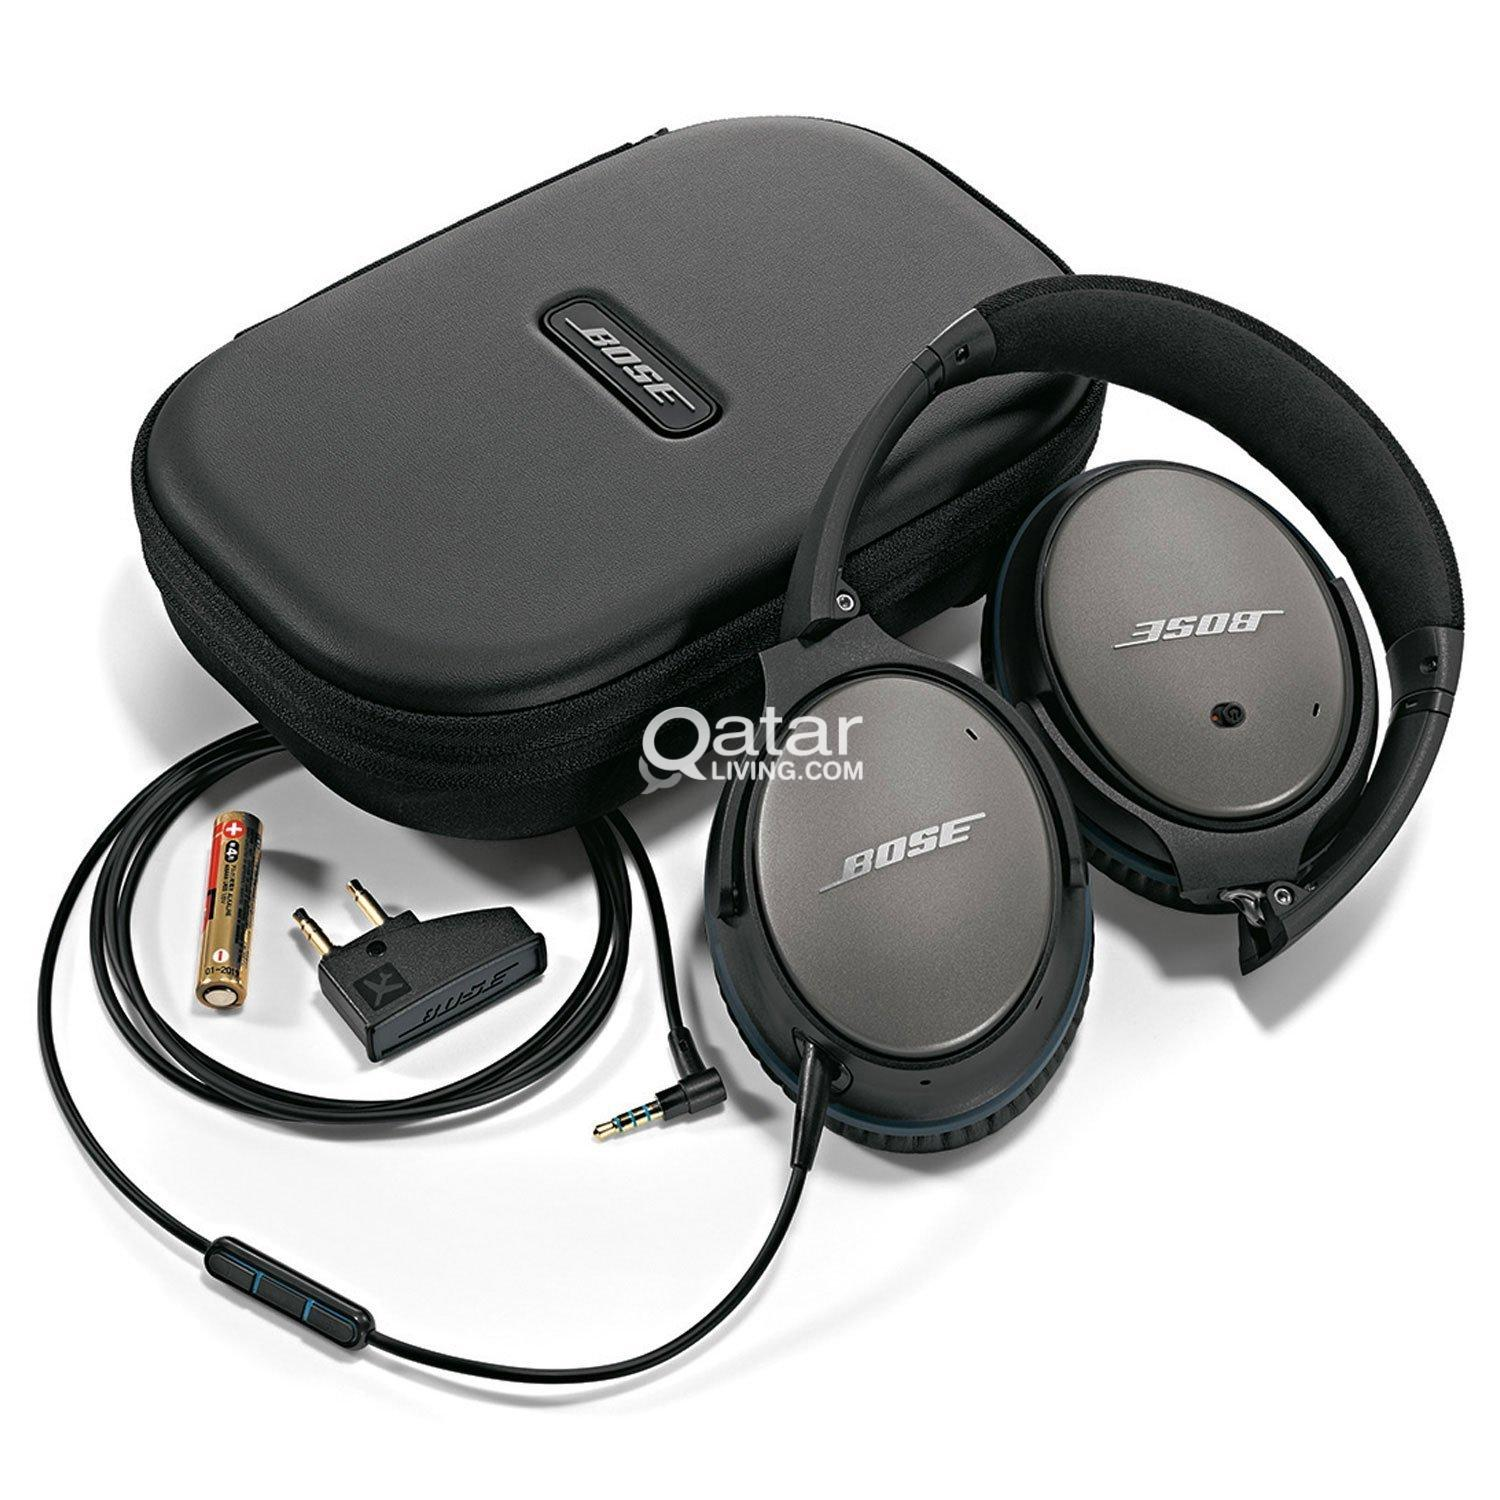 10a2a66ff17 Bose QuietComfort 25 Acoustic Noise Cancelling Headphones | Qatar Living